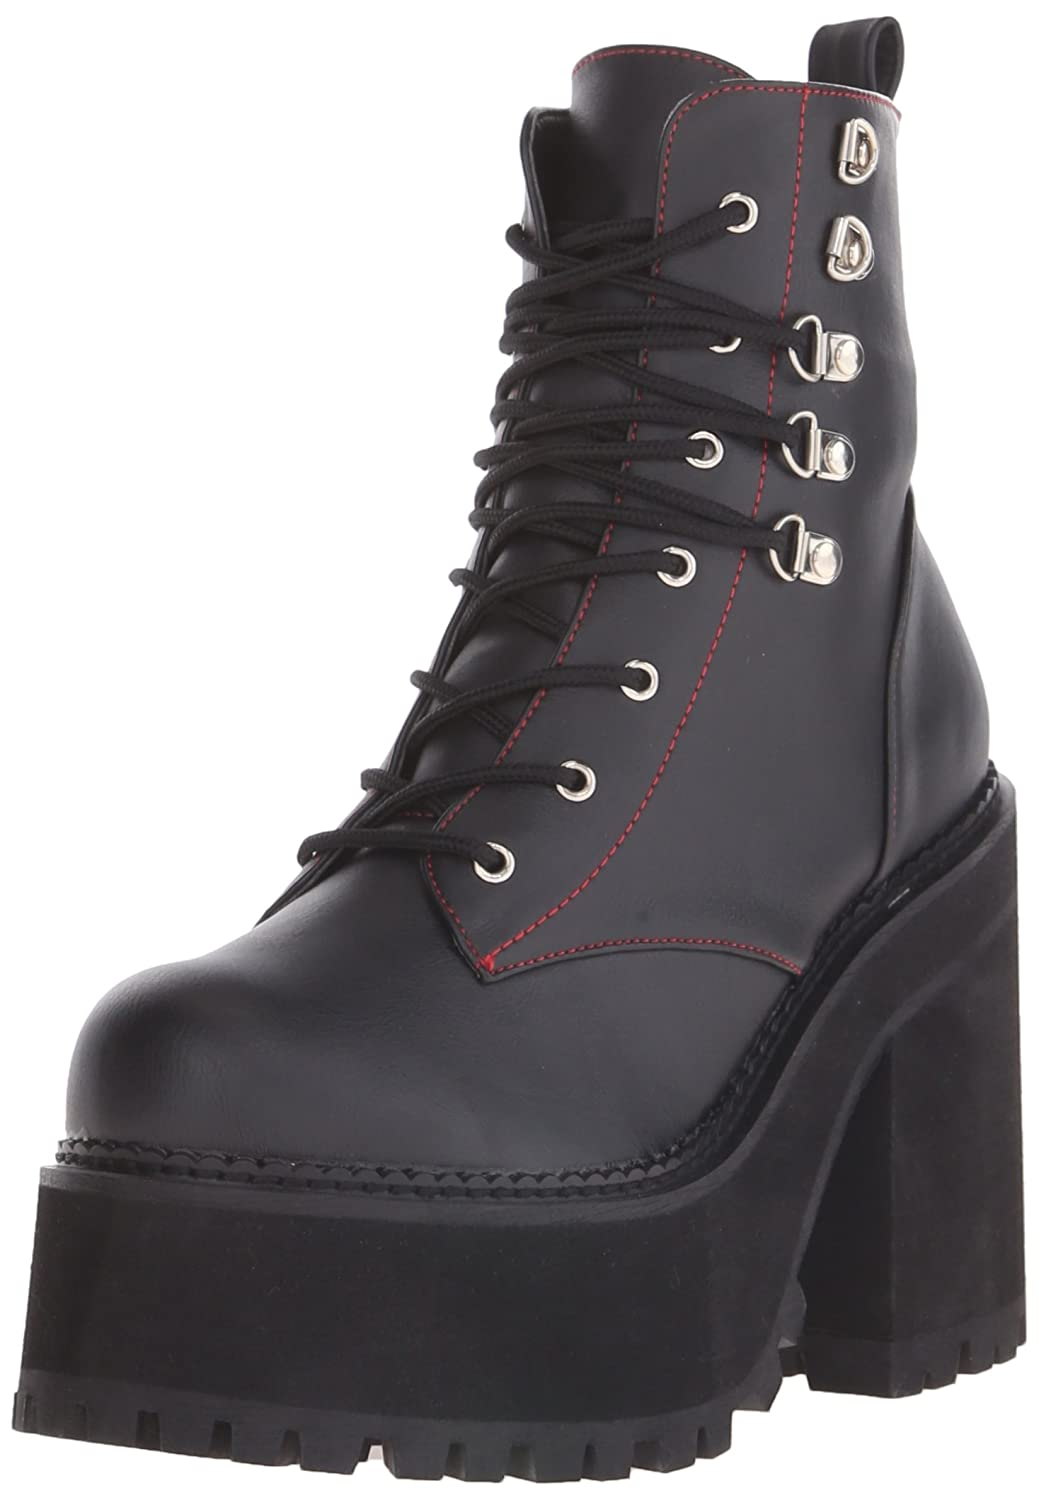 Demonia Women's ASST100/BVL Boot B014J068HA 9 B(M) US|Black Vegan Leather